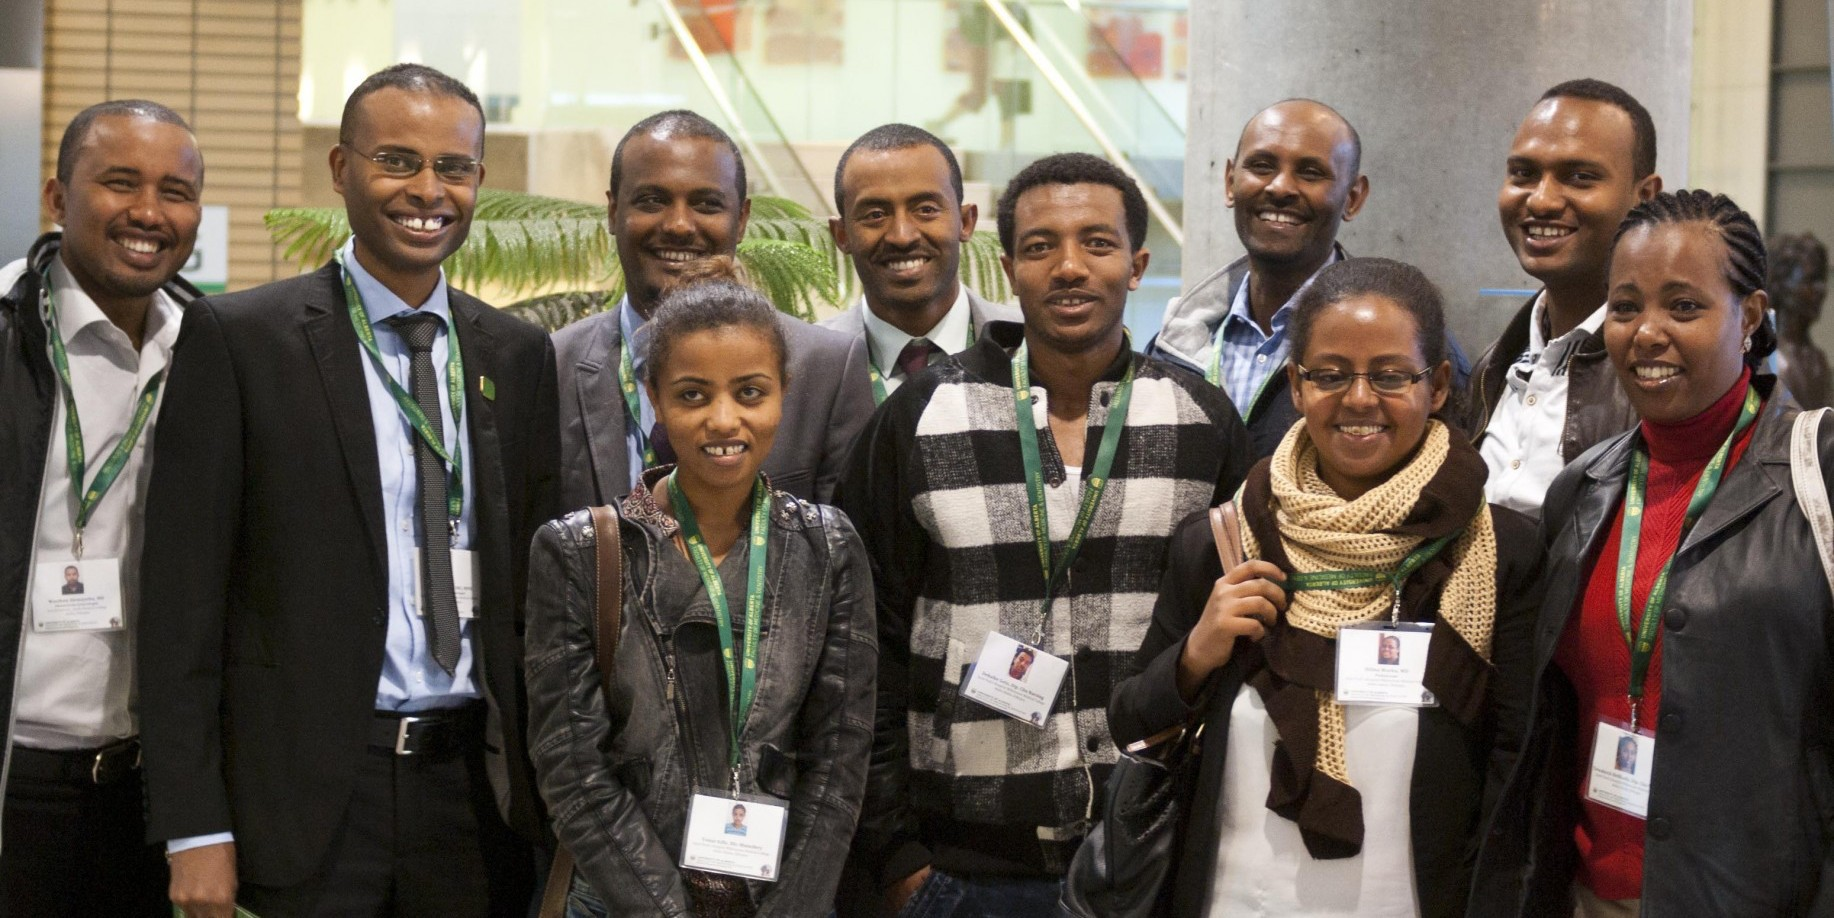 Visiting health professionals from Ethiopia.